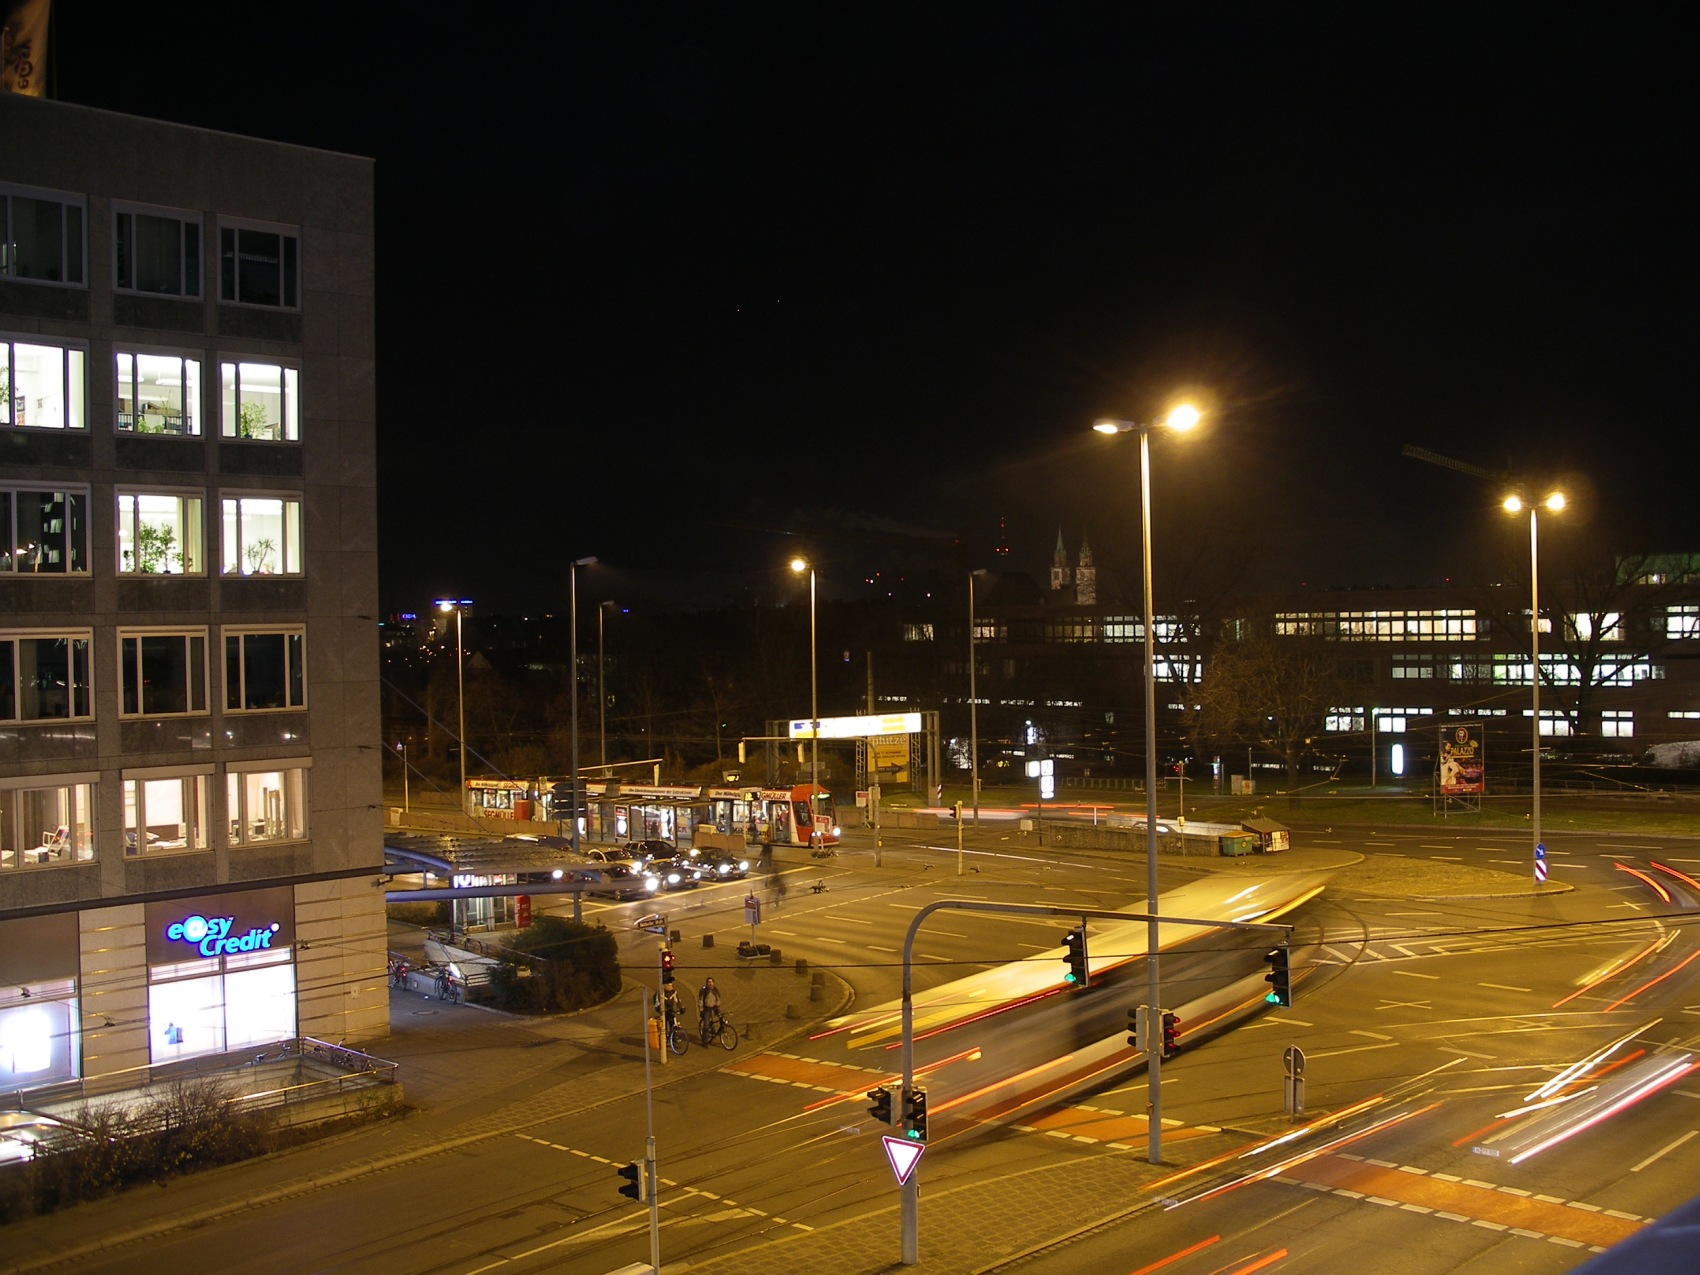 IMGP1535.JPG - Rathenauplatz am Abend